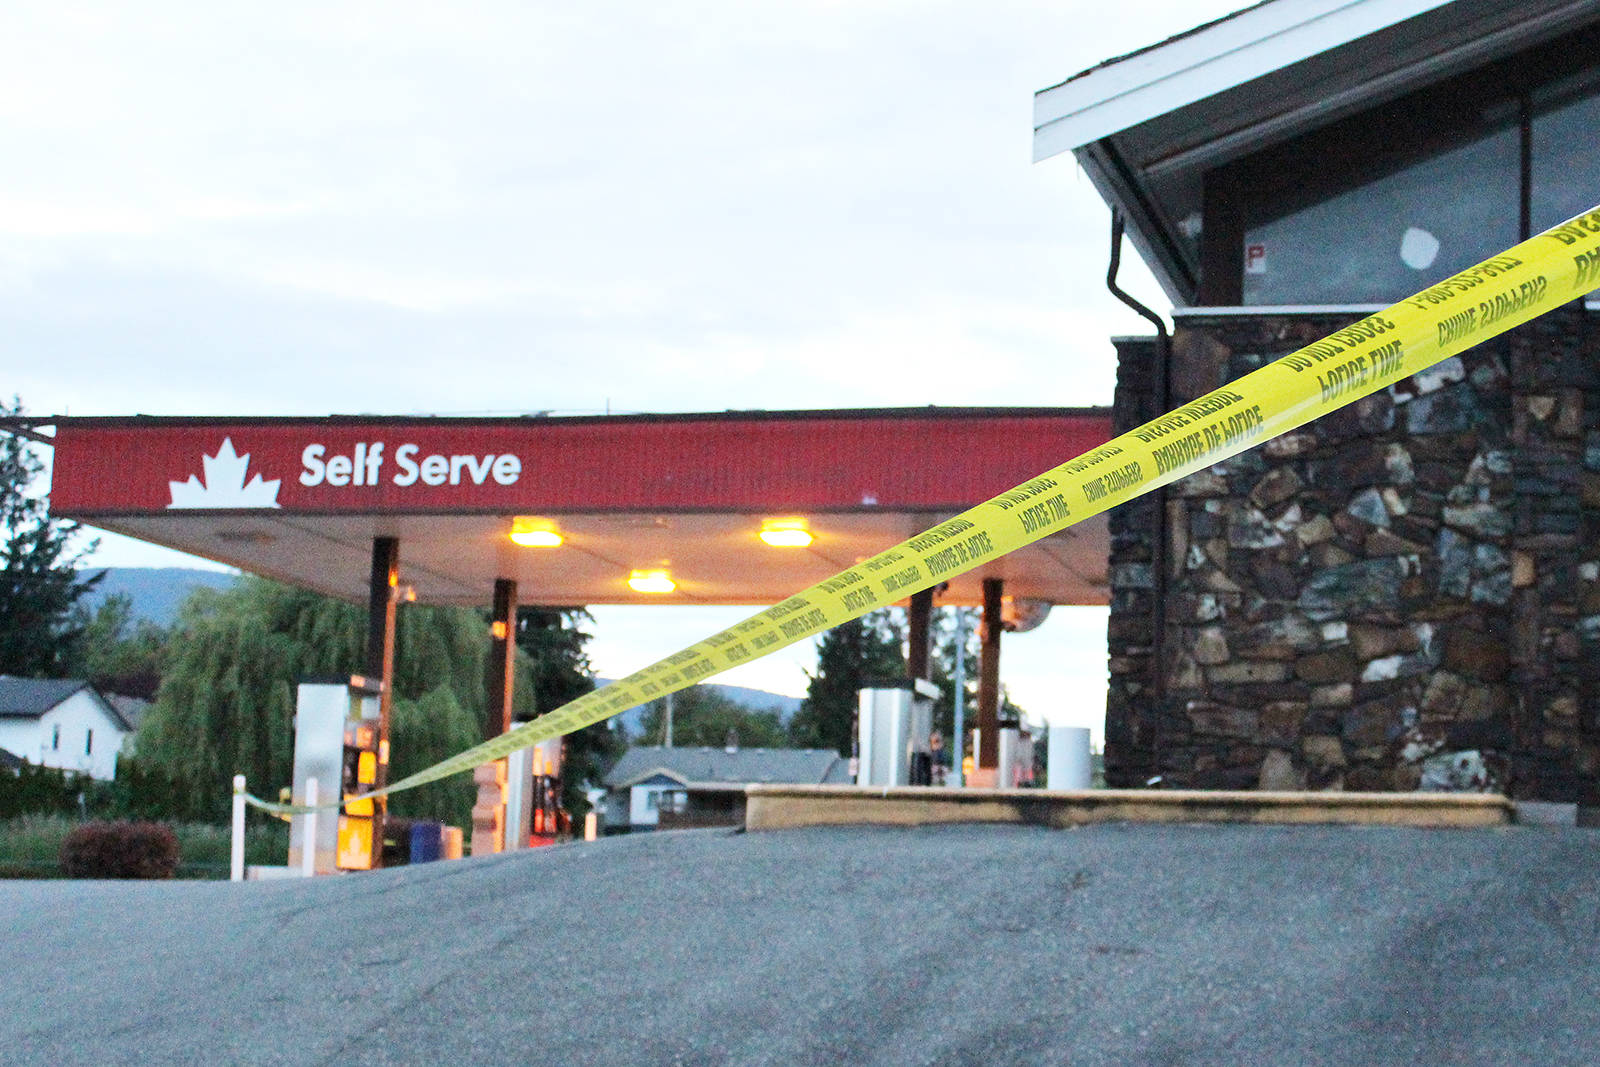 A suspect was seriously injured in a gas station robbery attempt in Nanaimo on the weekend. (Karl Yu/The News Bulletin)